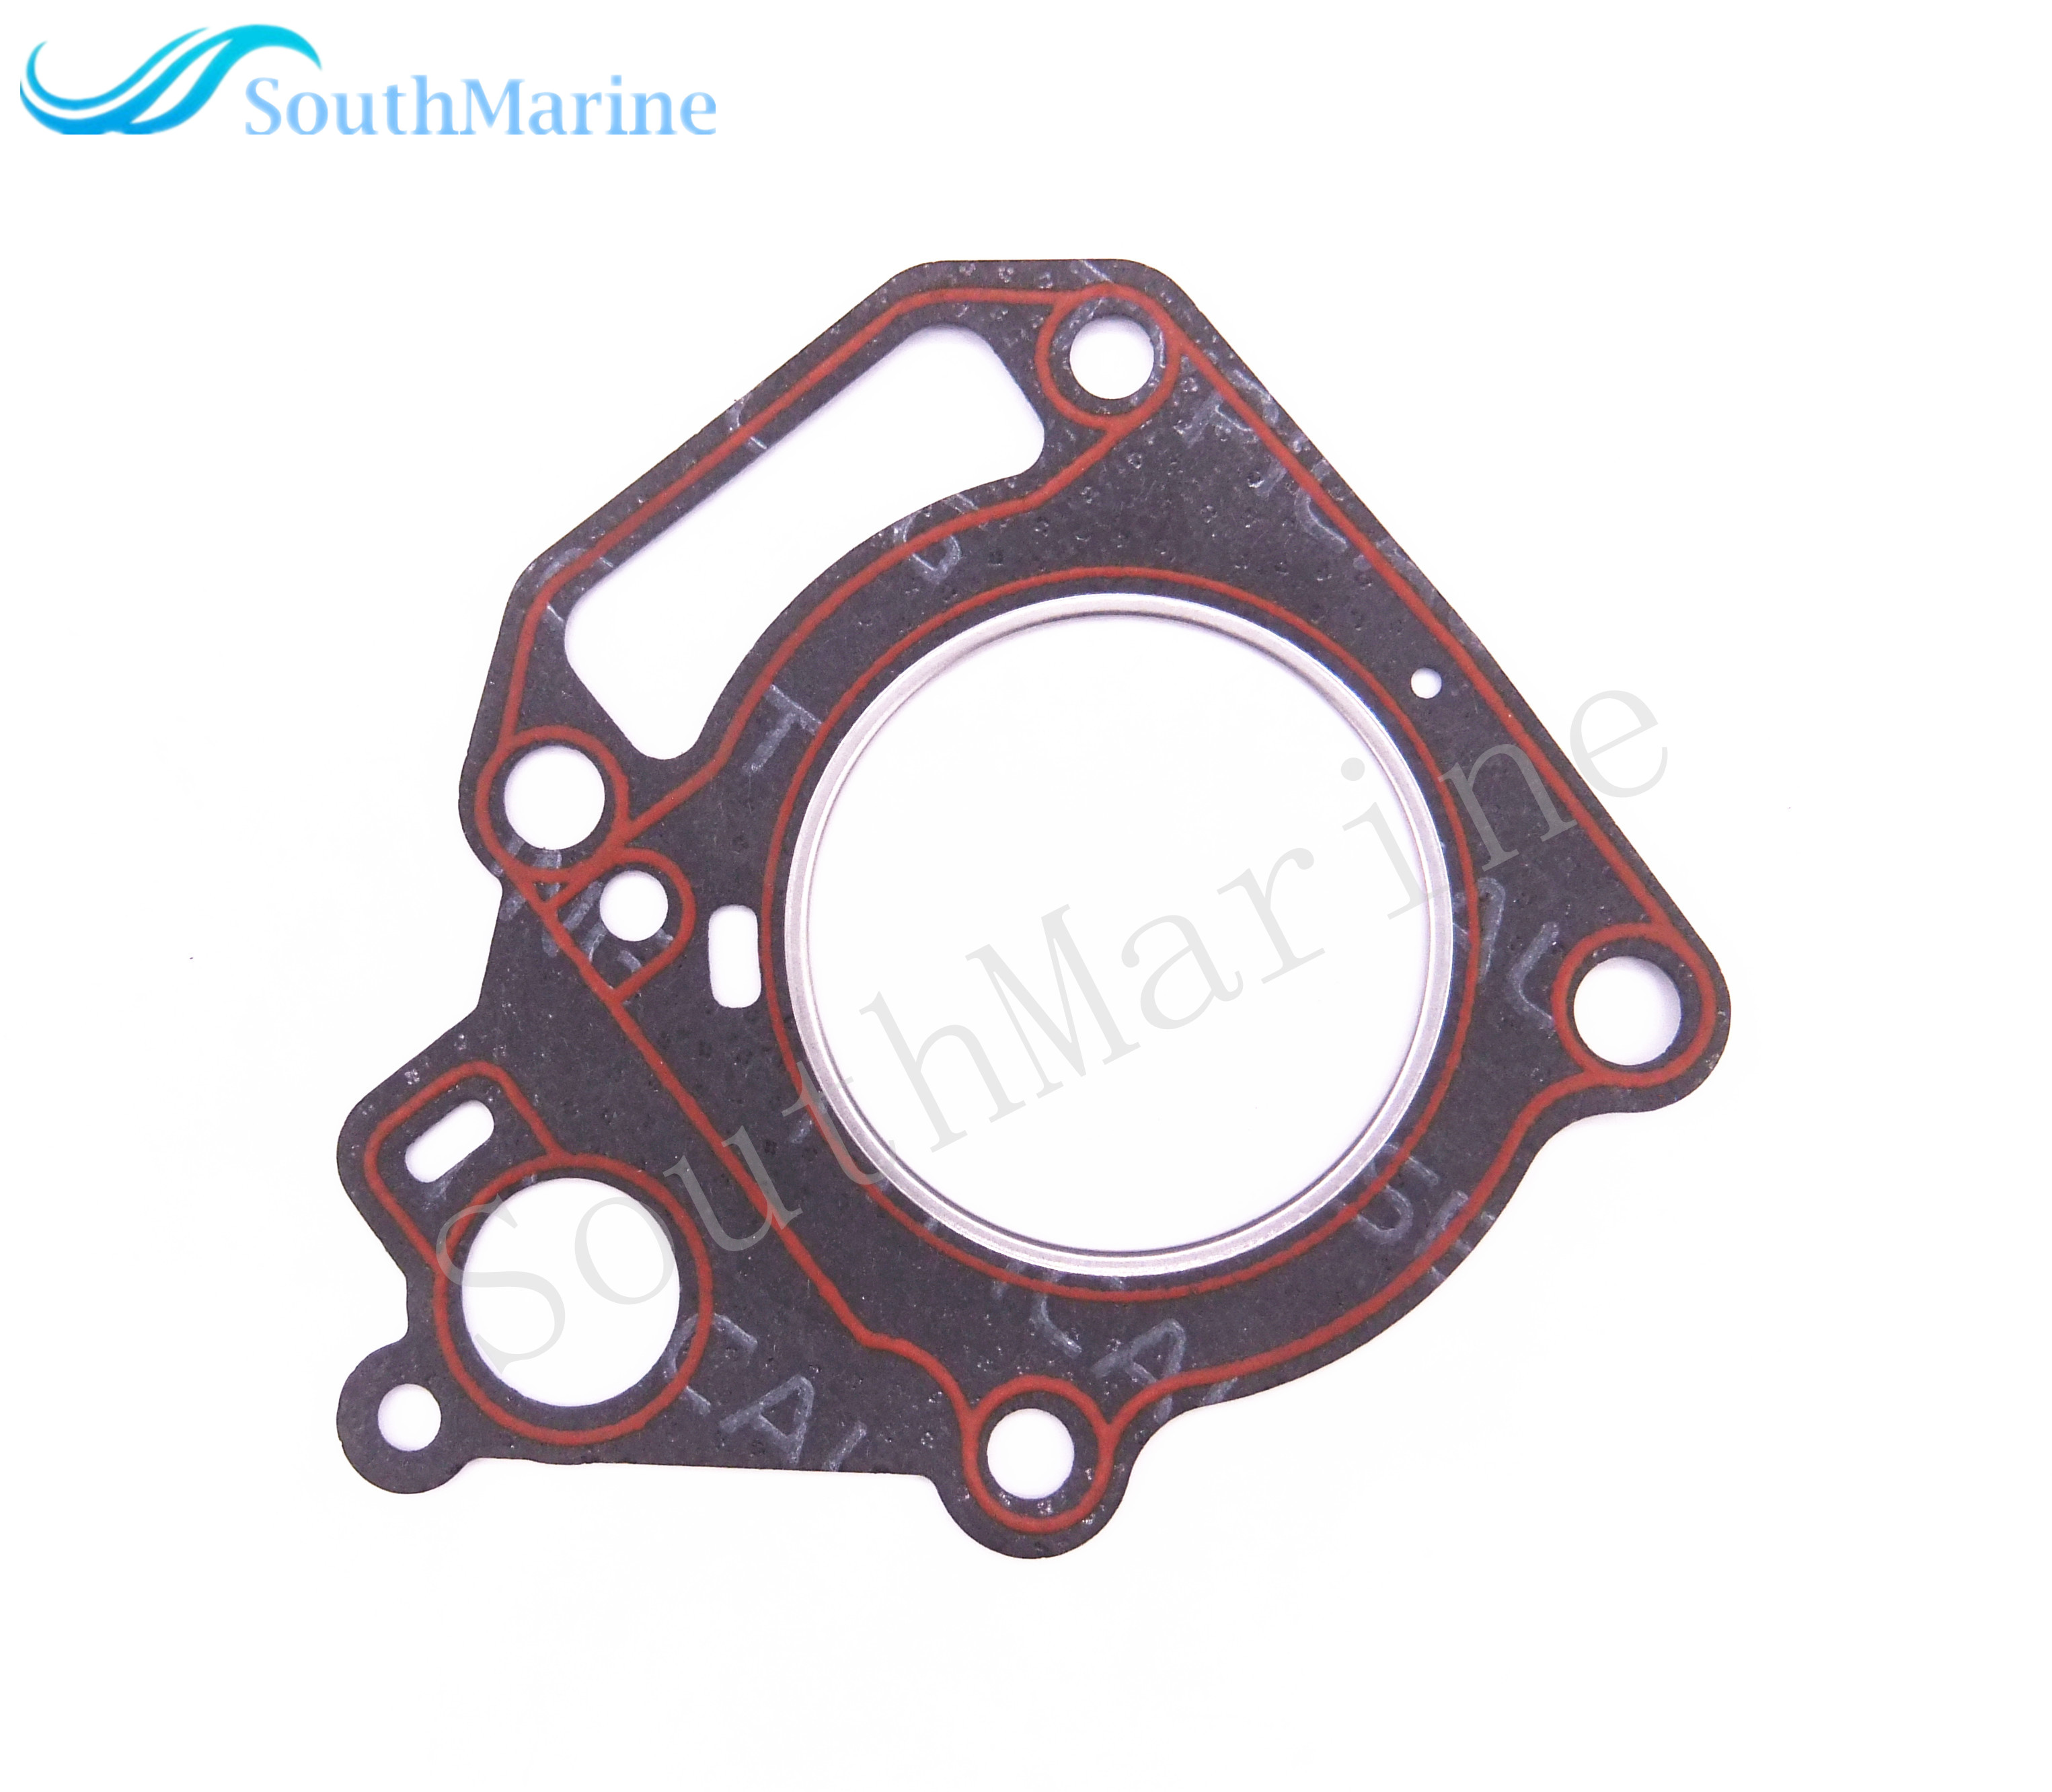 Cylinder Head Gasket Outboard Engine F4-04000014 For Parsun HDX 4-Stroke F4 F5 Boat Motor Free Shipping